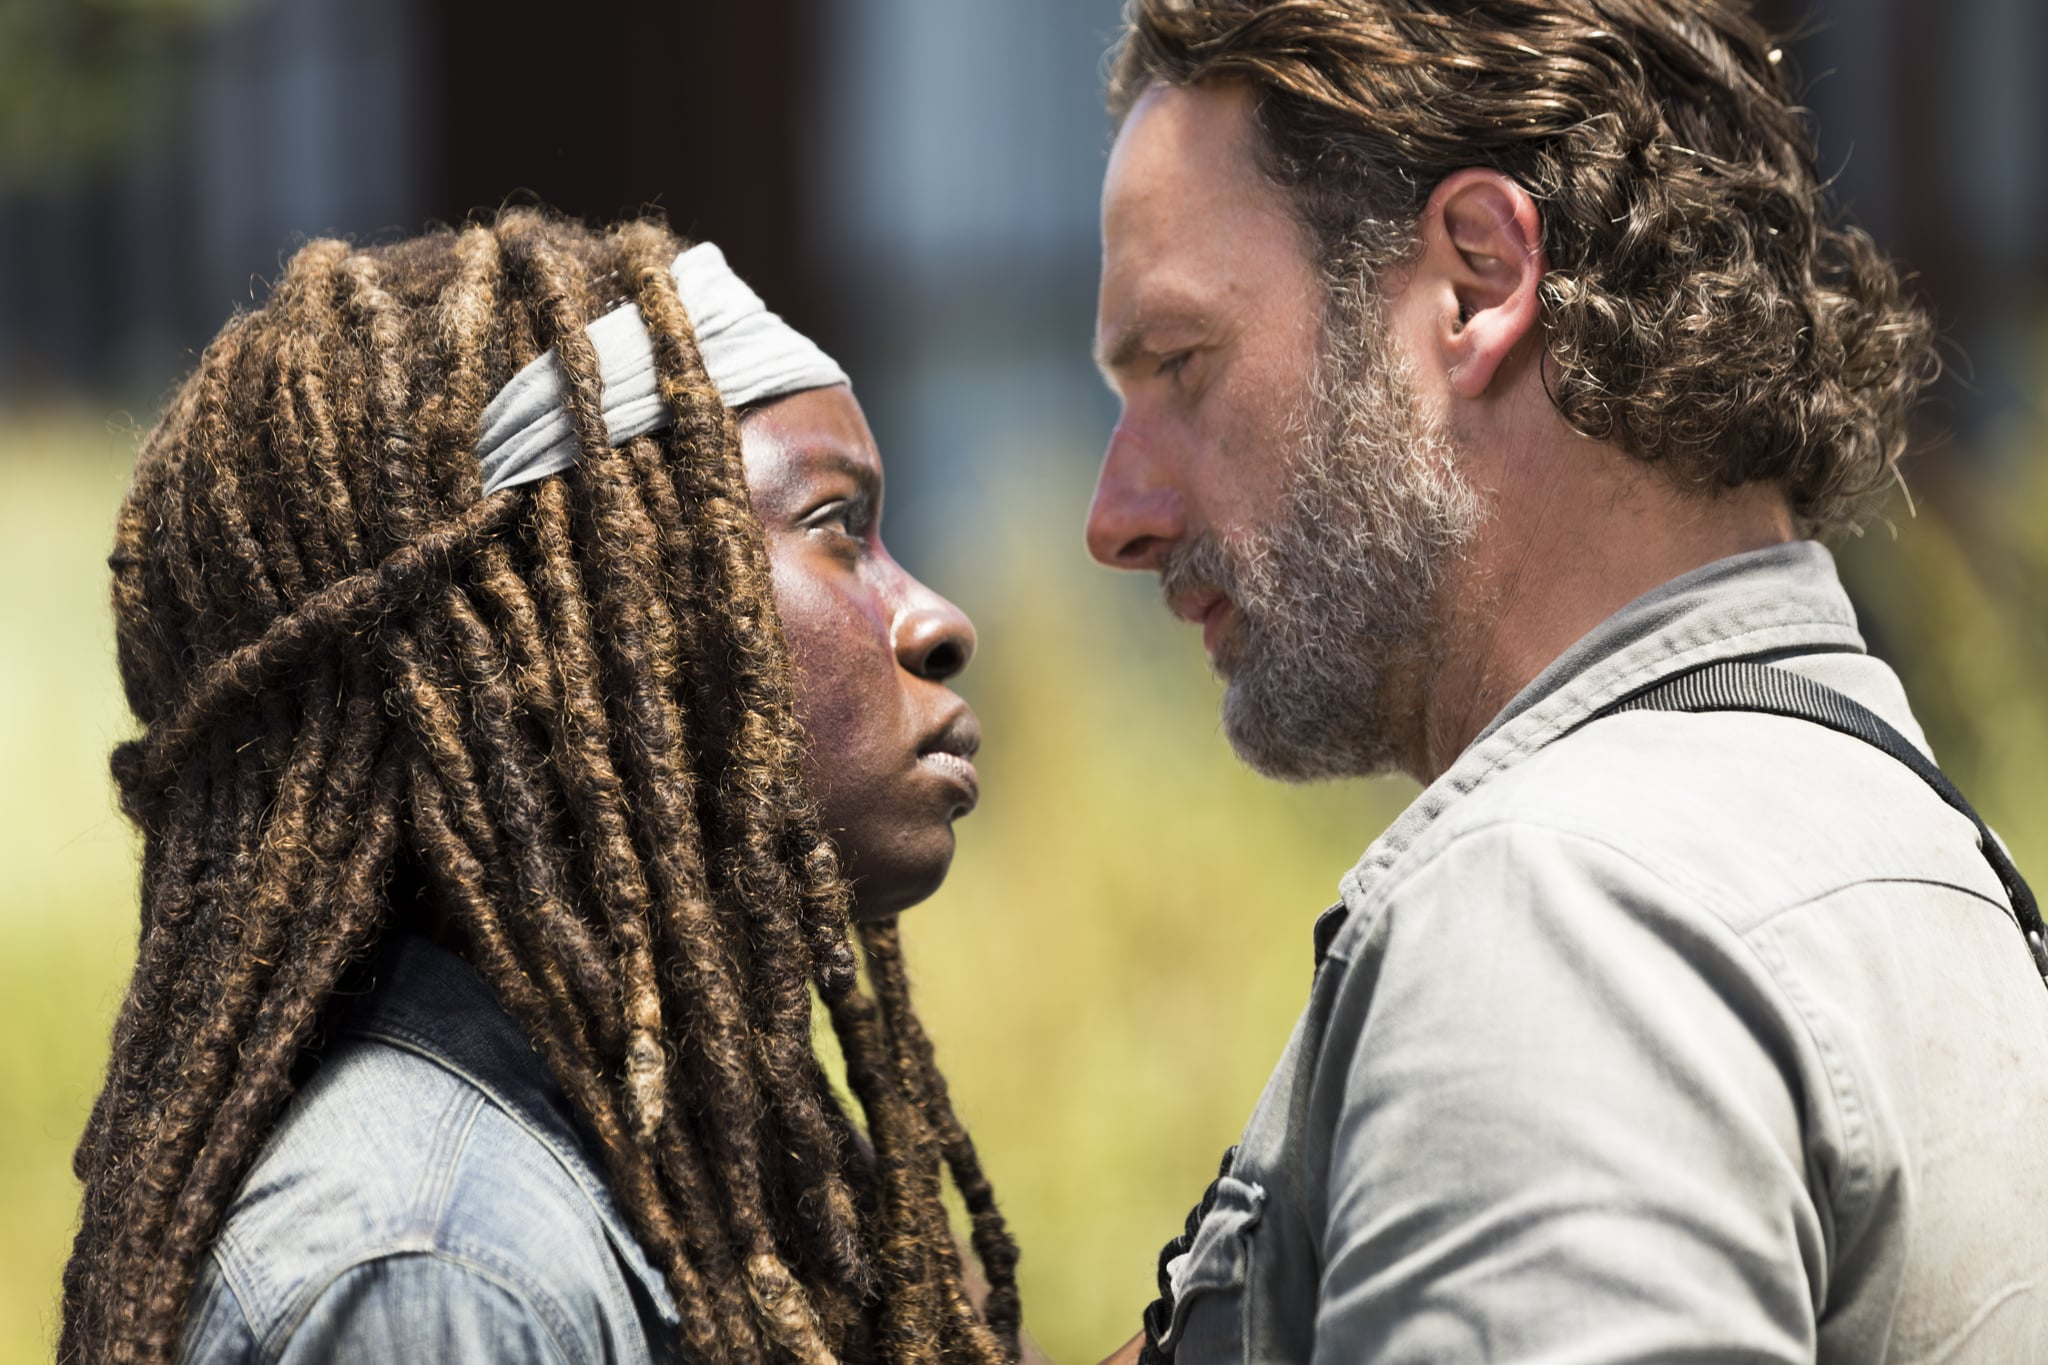 The Walking Dead Season 8 Premiere Draws Lowest Ratings Since Season 3